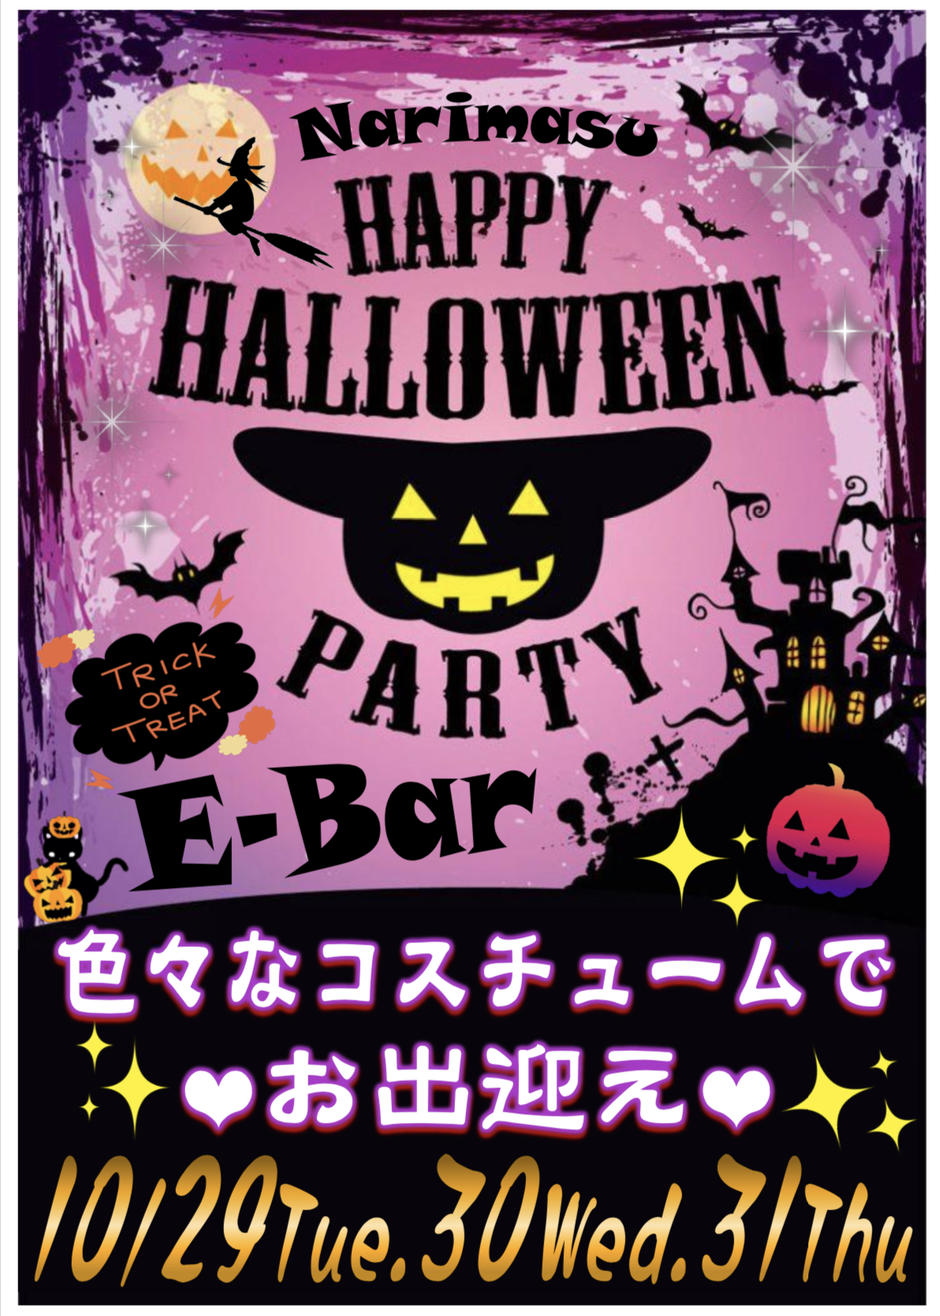 HELLOWEEN★PARTY